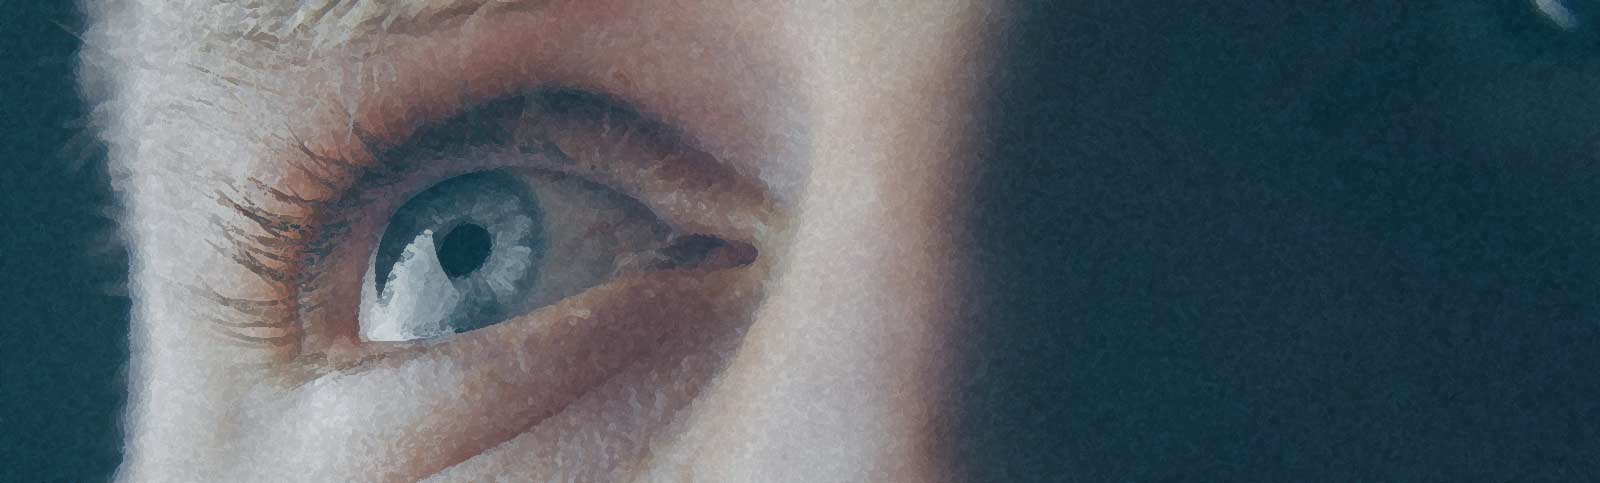 Eyelid Surgery - a Look at the Recovery Process